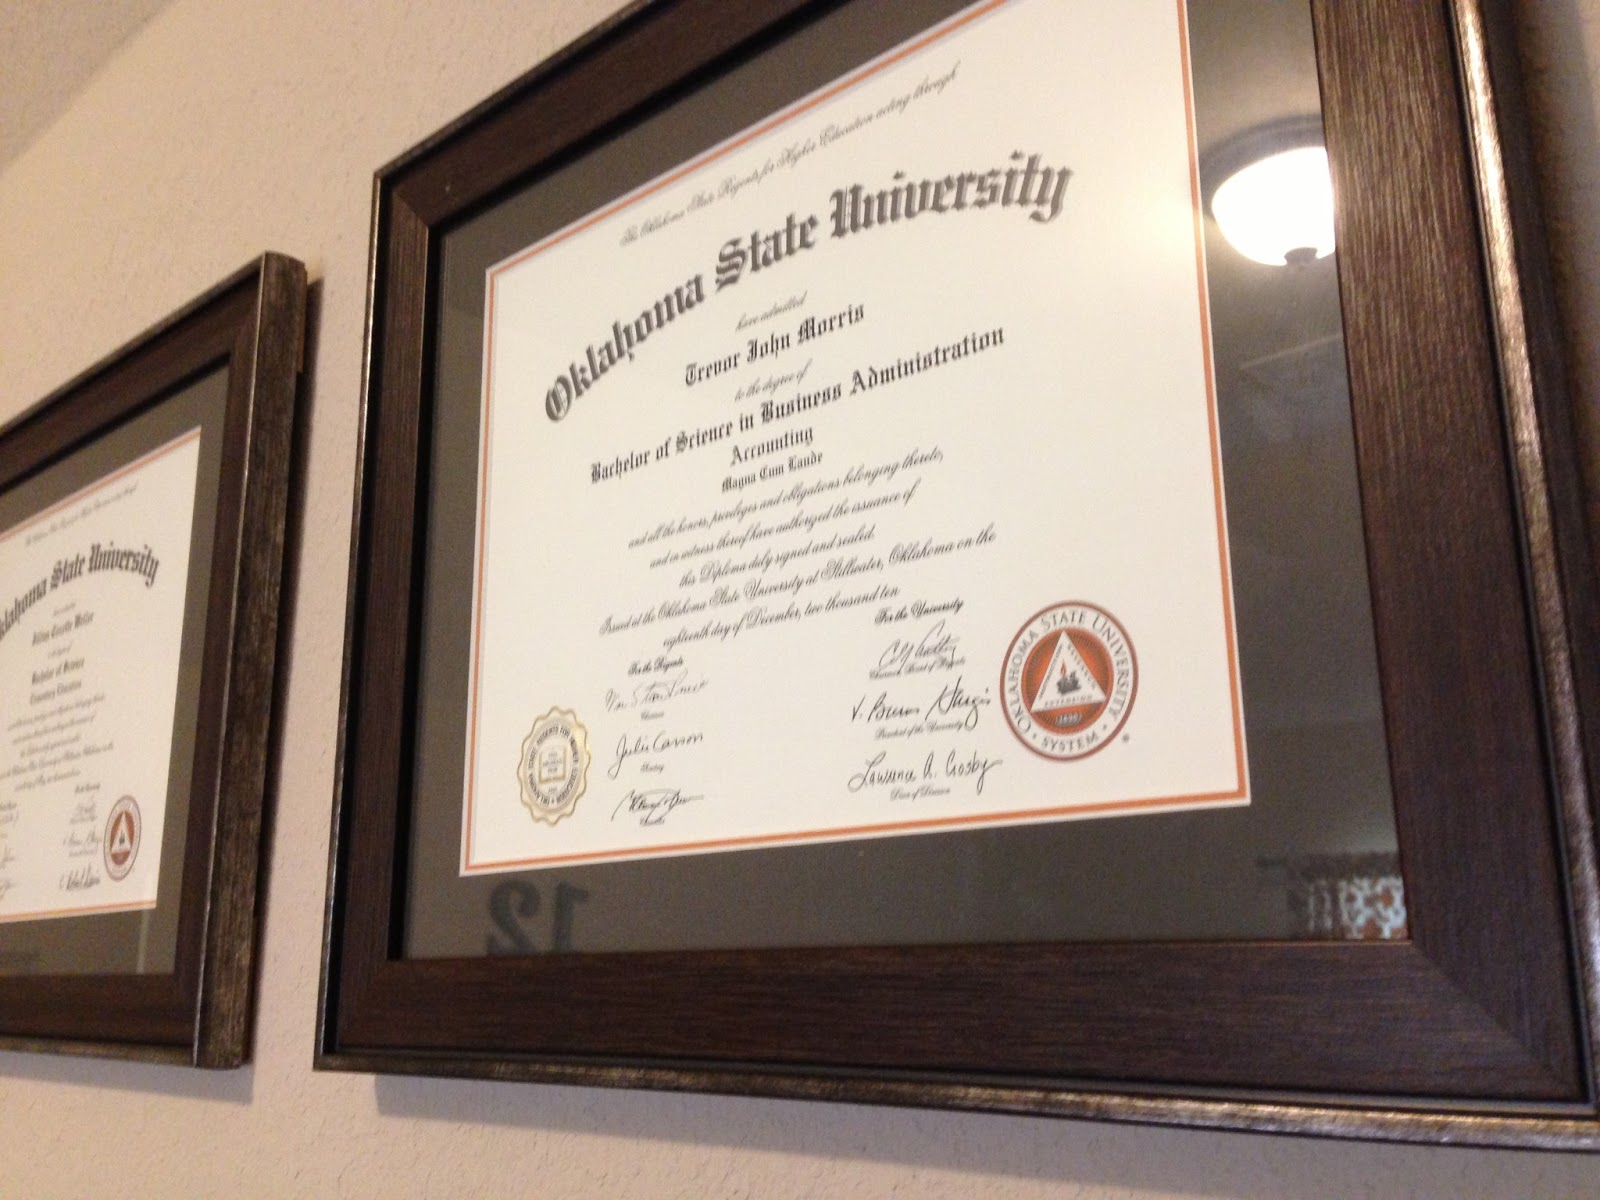 Perfect Certificate Frames With Mat Composition - Framed Art Ideas ...